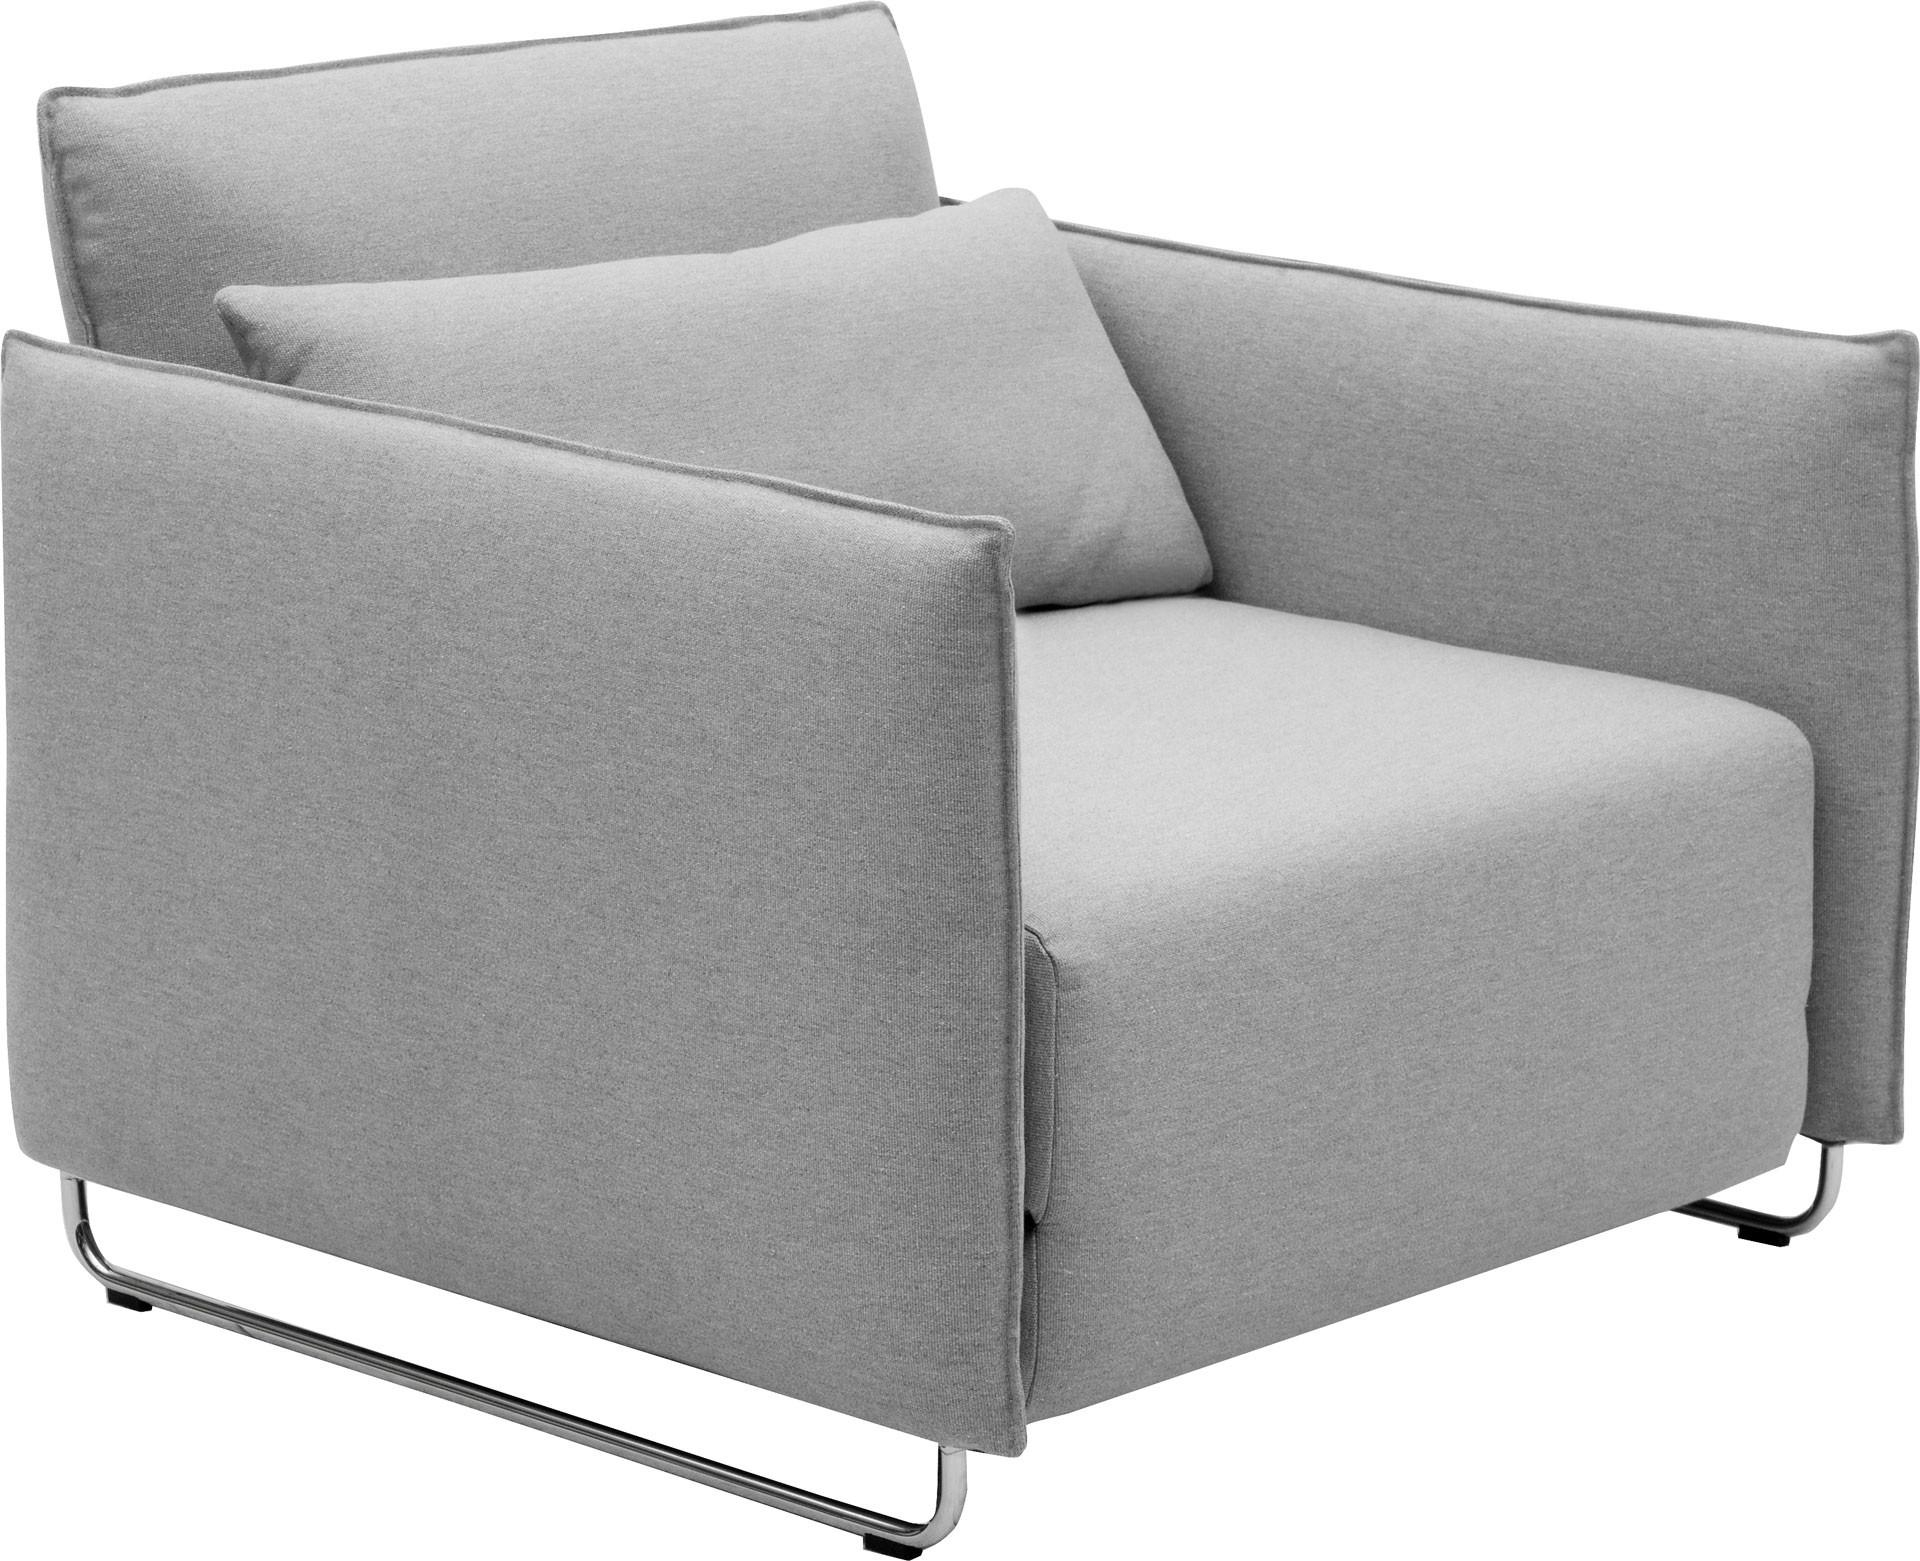 Sofas Center : Single Chair Sofa With Memory Foamsingle Foam Regarding Single Chair Sofa Bed (Image 16 of 20)